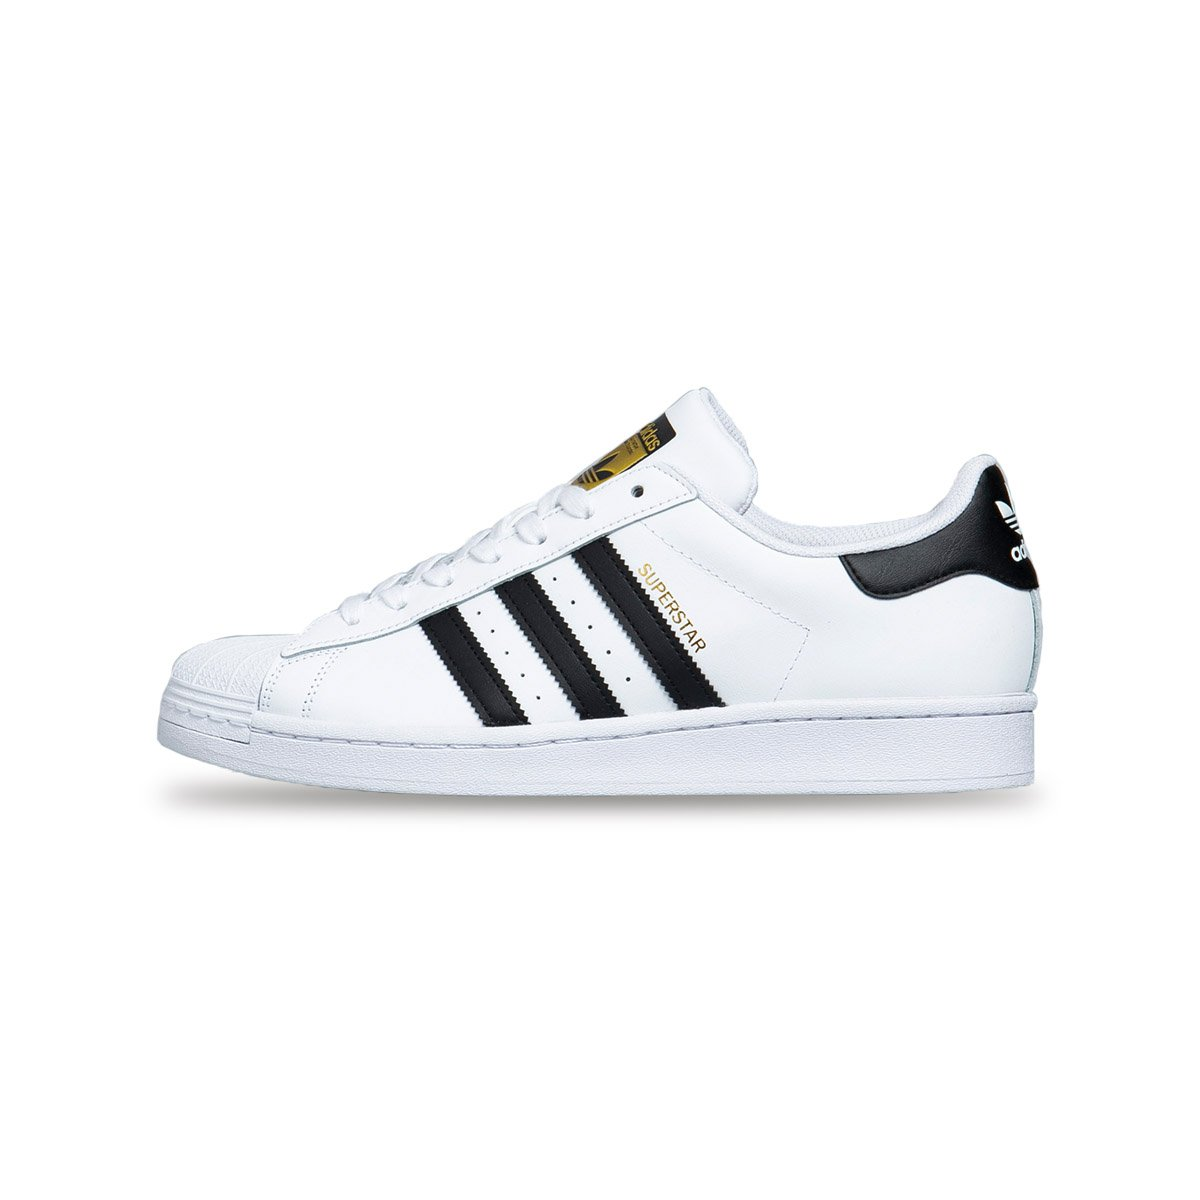 Sneakers buty Adidas Originals Superstar białe (EG4958)